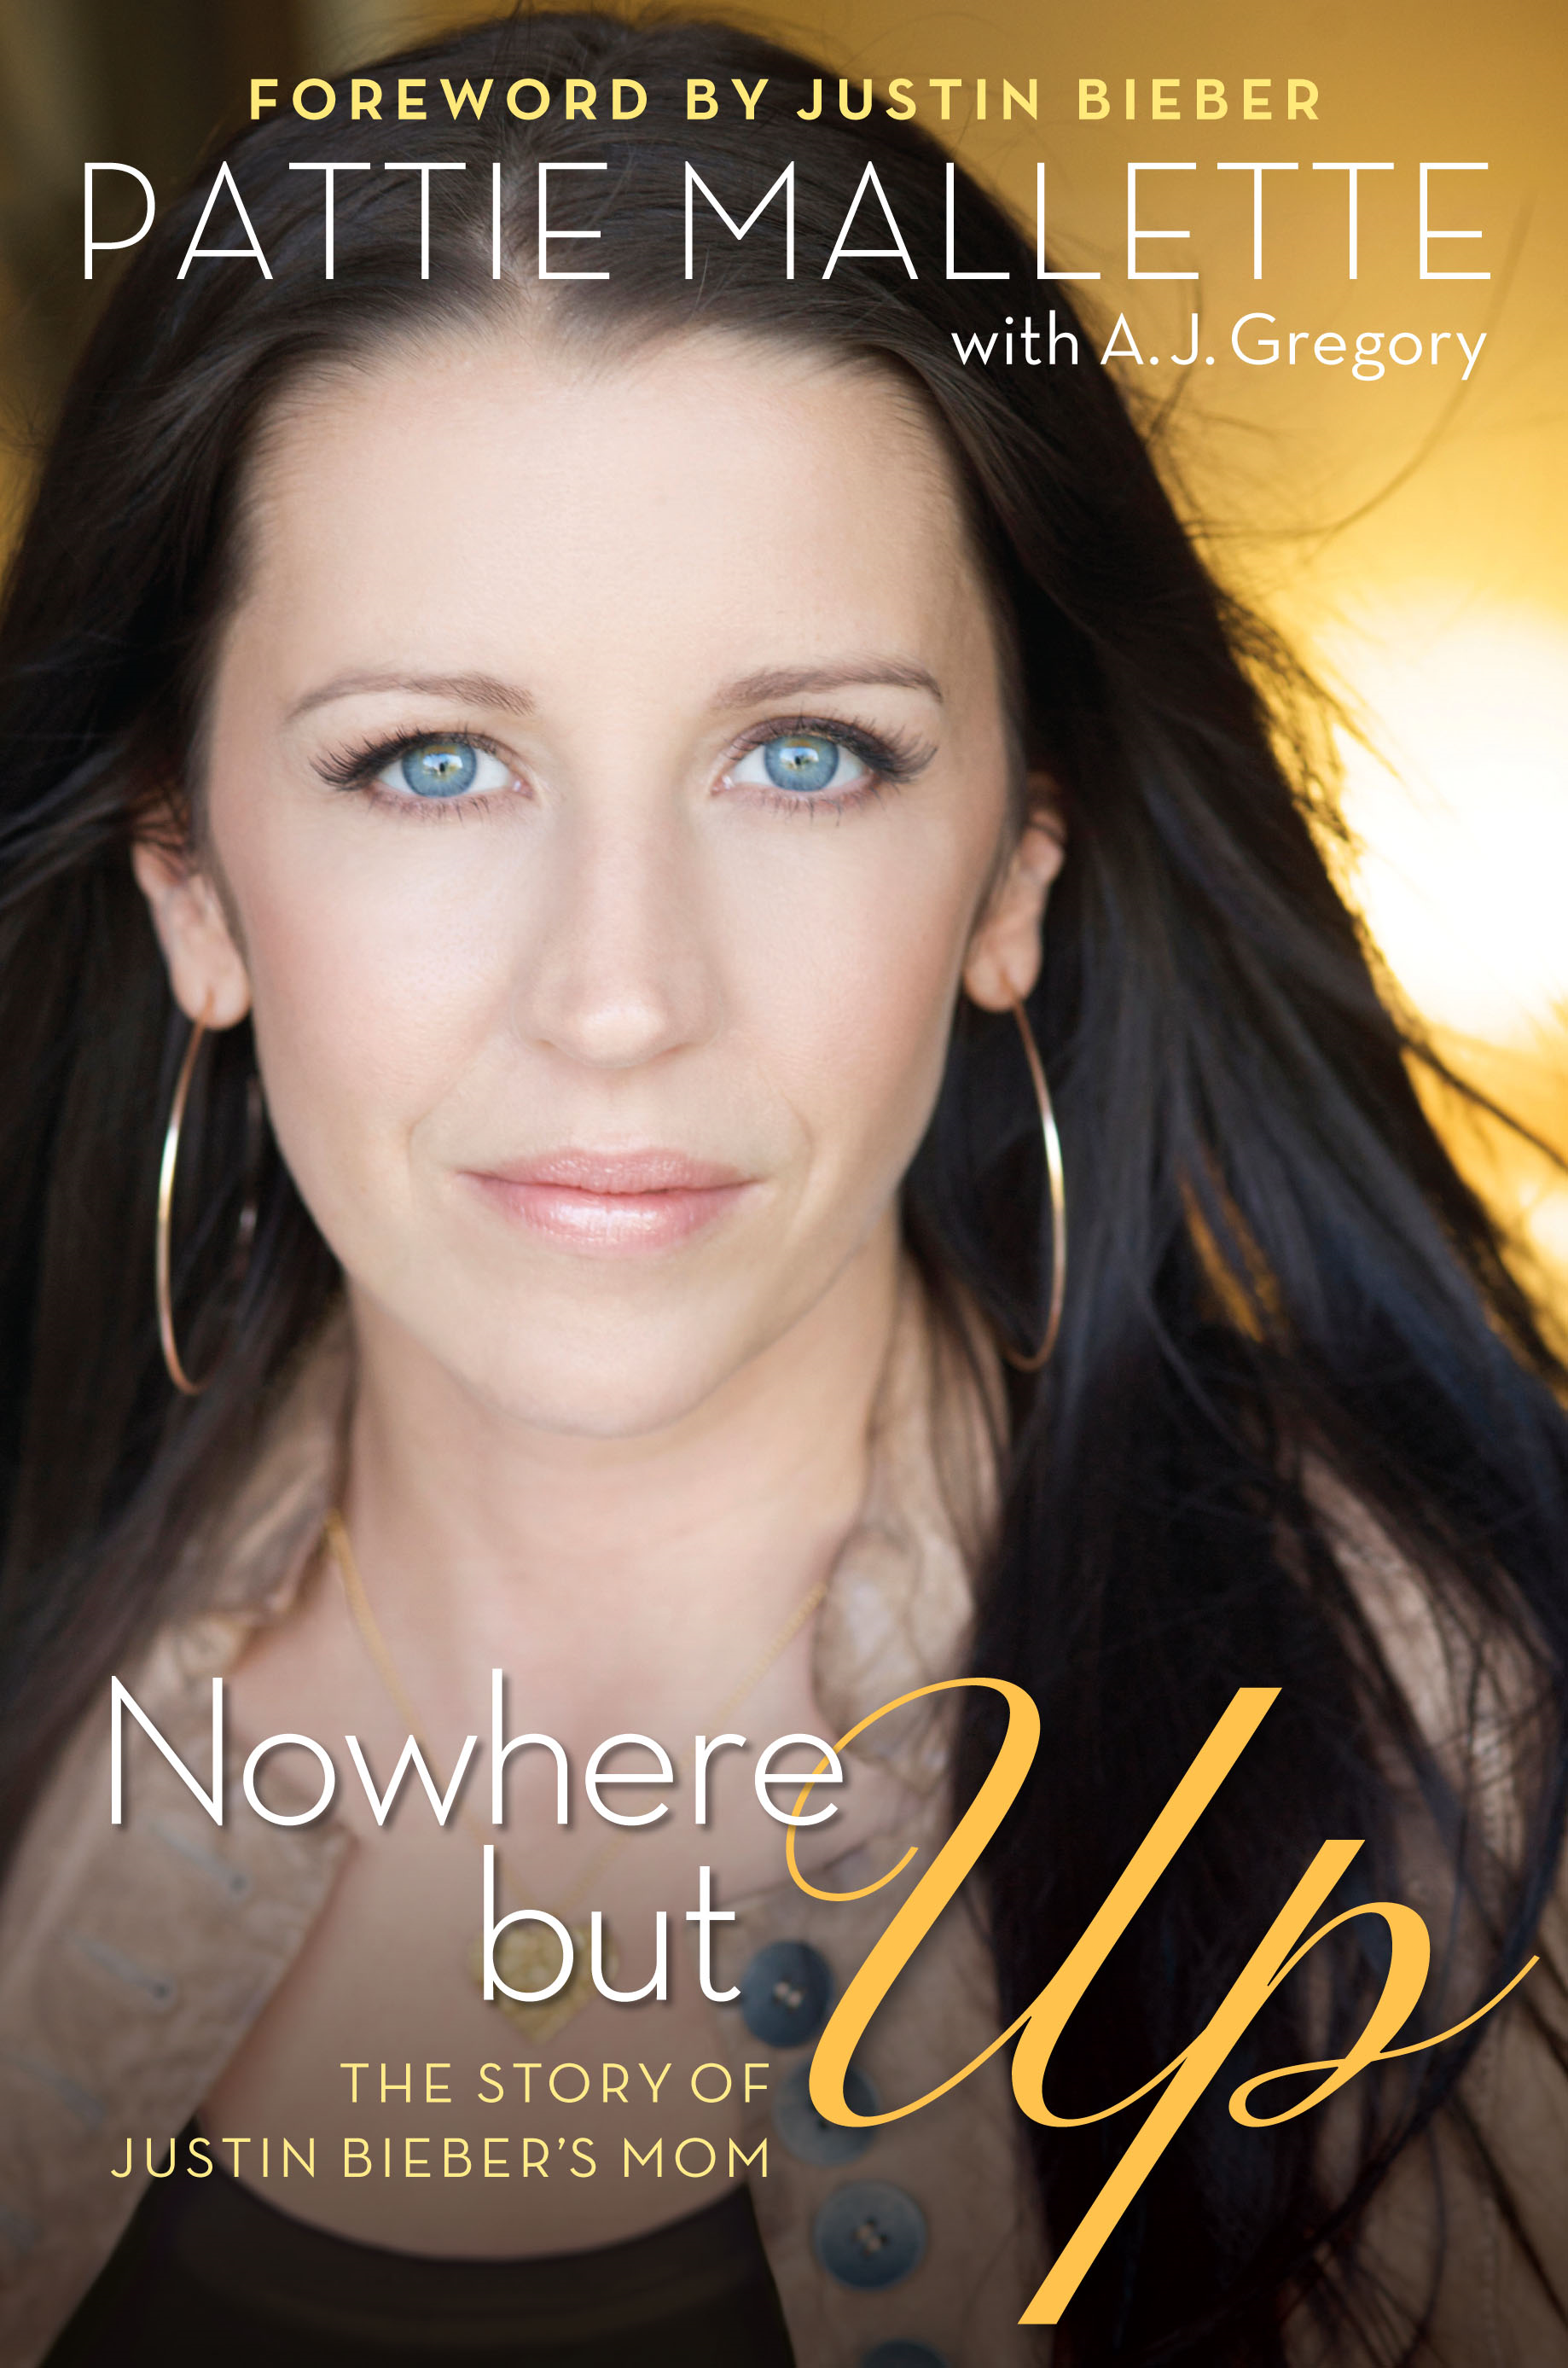 Nowhere but Up: The Story of Justin Bieber's Mom By: A. J. Gregory,Pattie Mallette